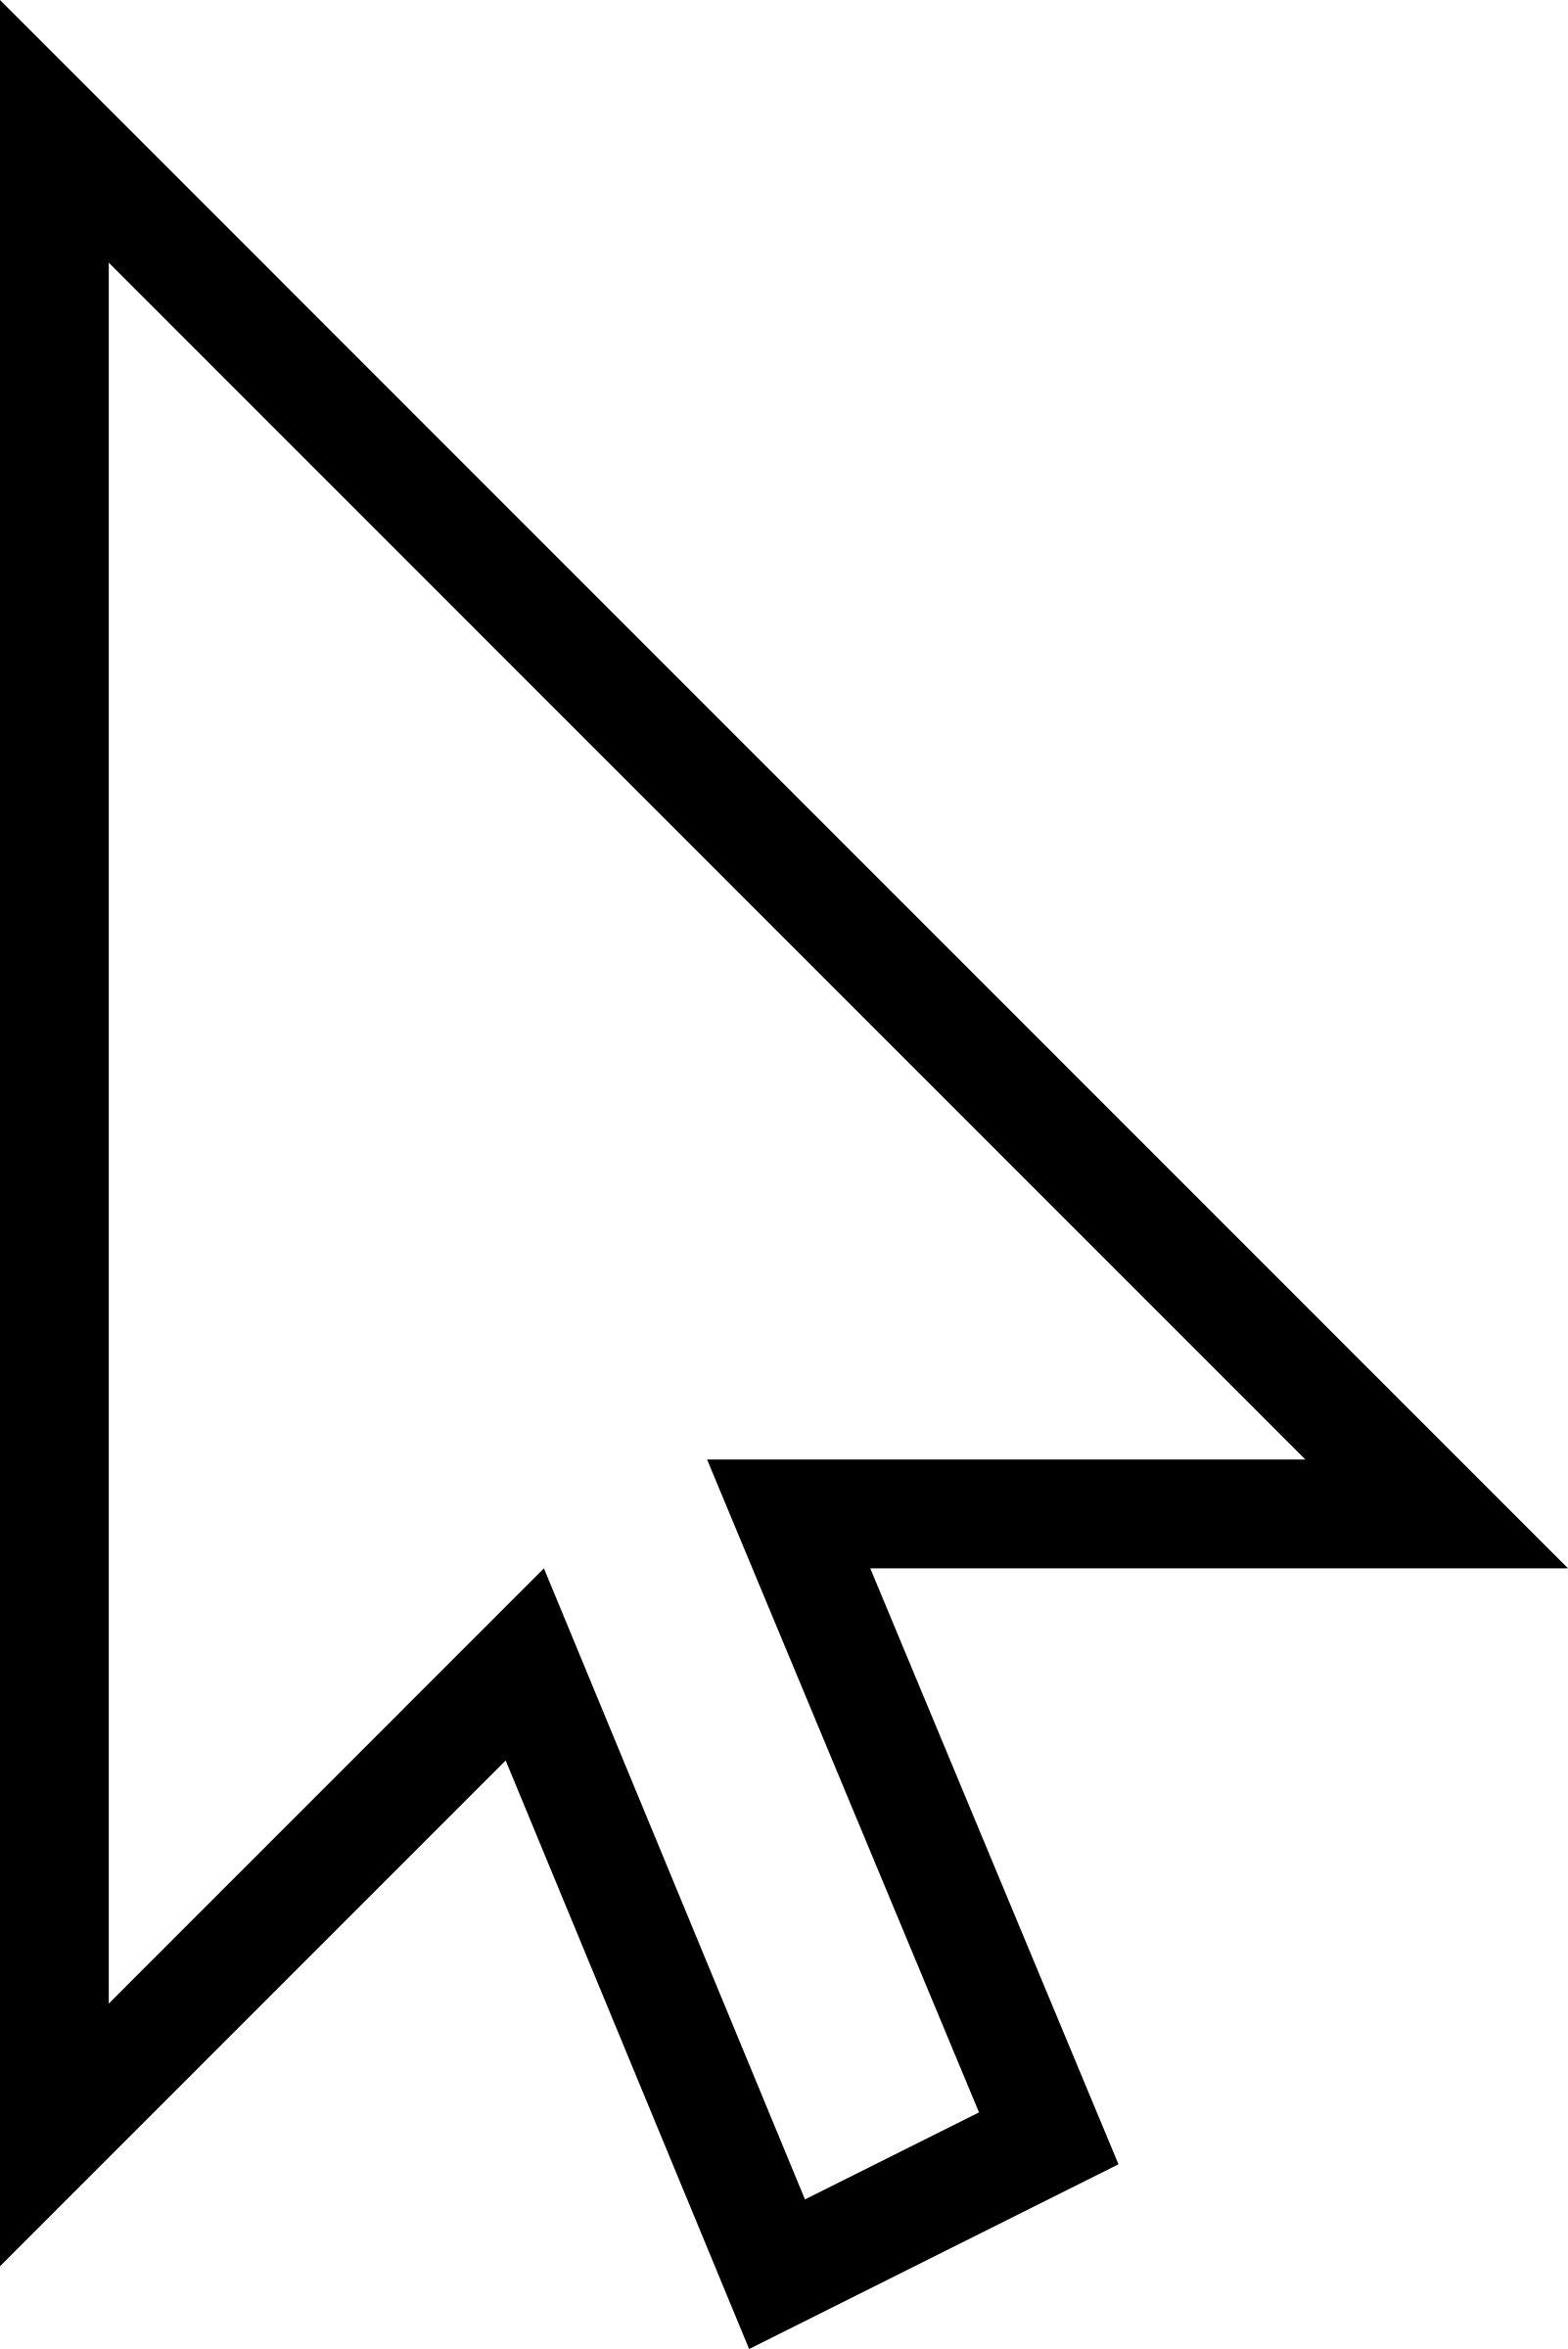 White Mouse Cursor Arrow By Qubodup Download Free Cursor Transparent Png Images For Your Works This Is Image Is Cleaned And In 2020 Png Free Icons Png Arrow Clipart